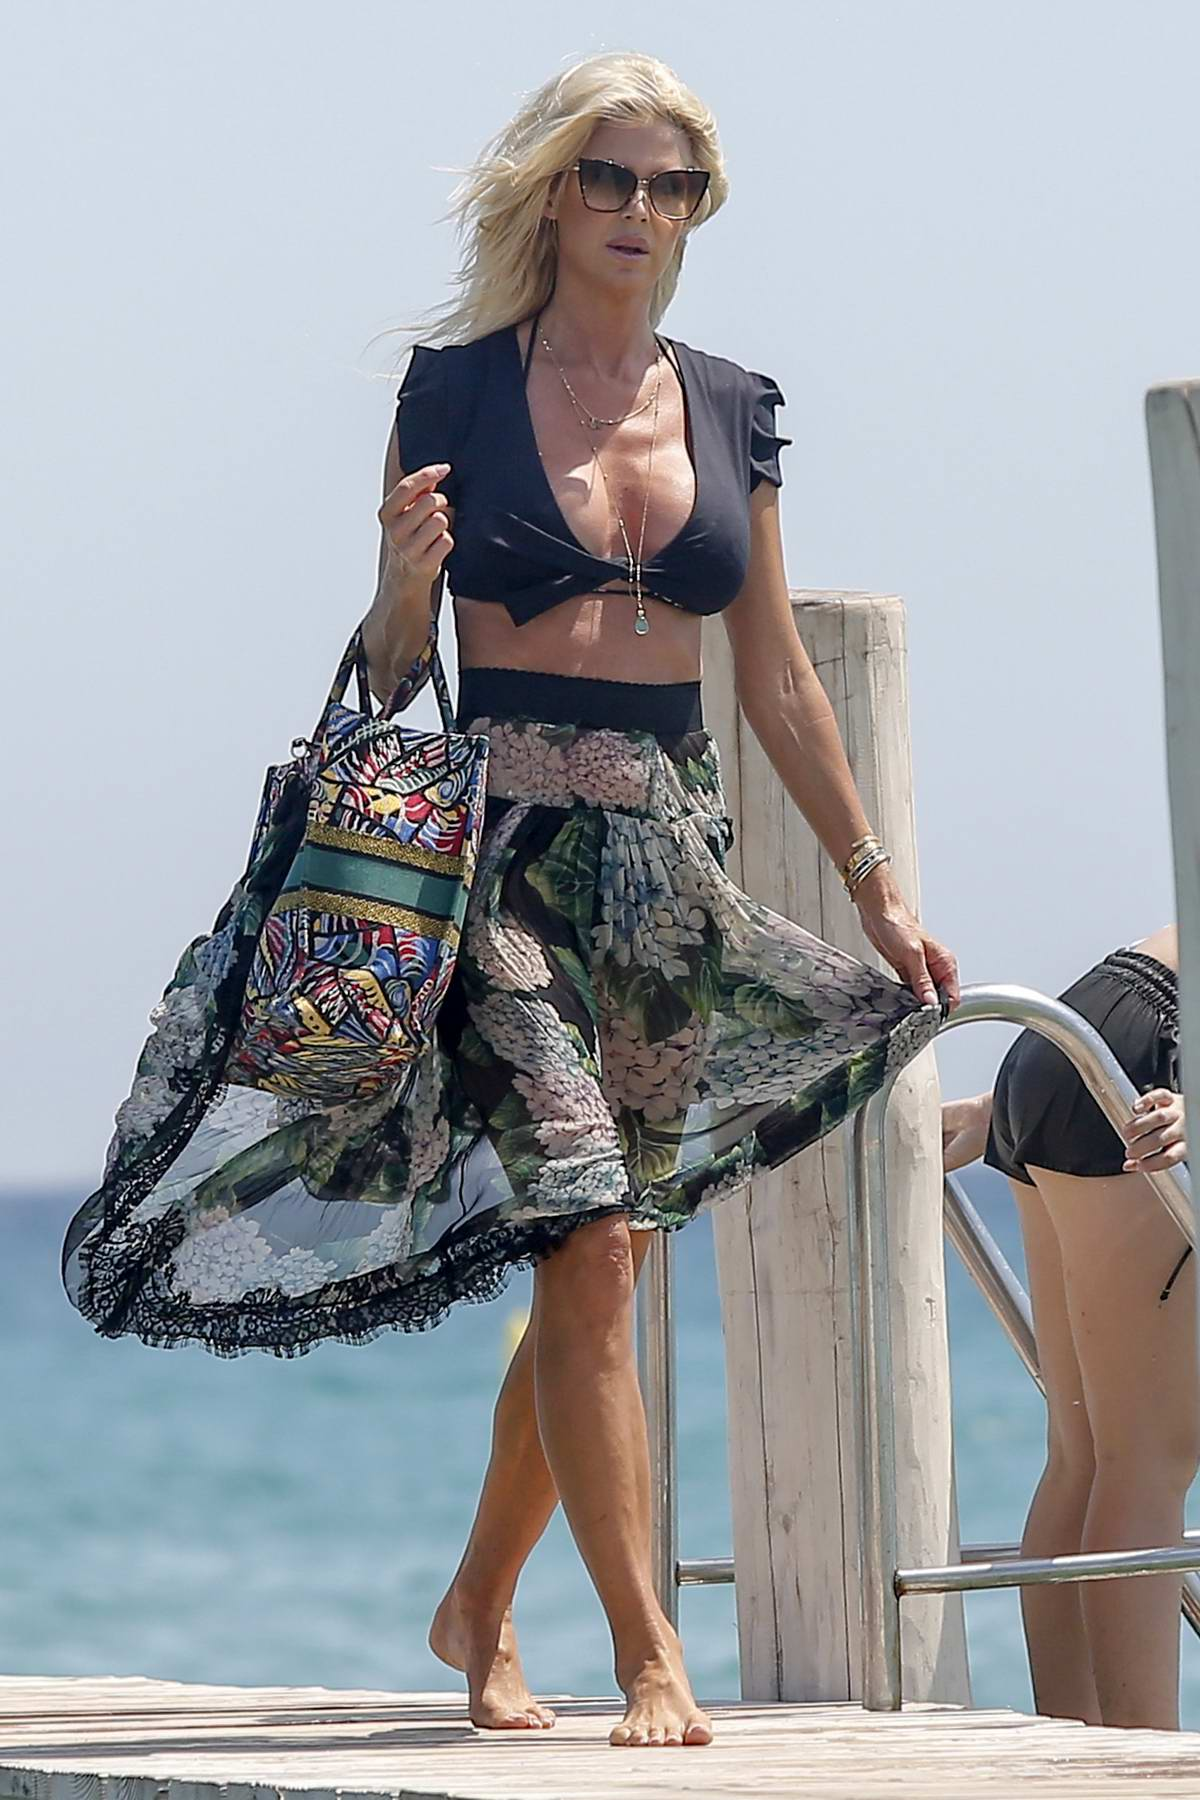 Victoria Silvstedt looks great floral print semi-sheer skirt as she arrives at club 55 in Saint-Tropez, France